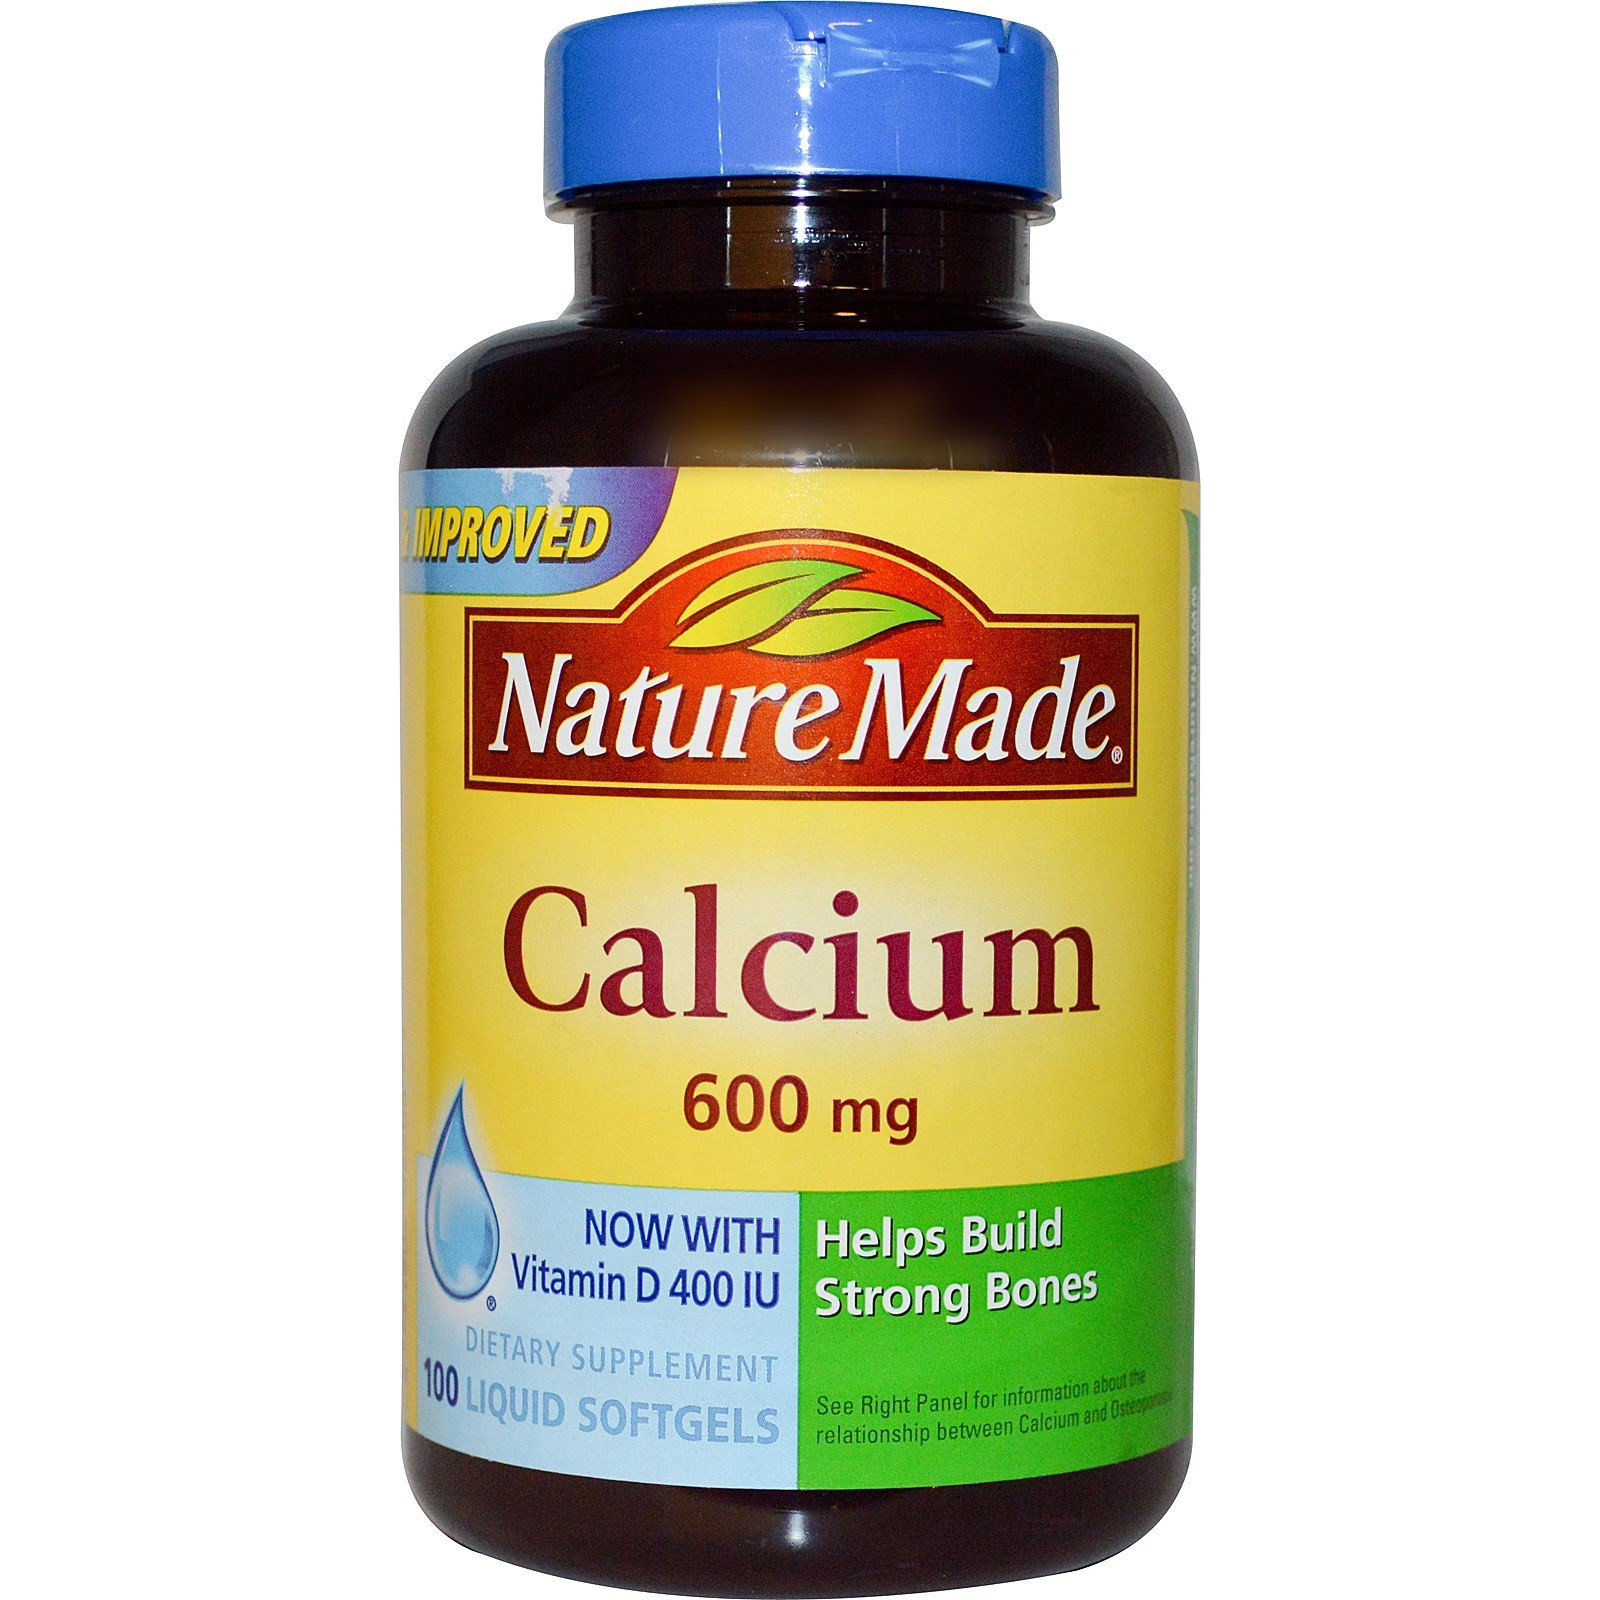 Nature Made, Calcium with Vitamin D 400 IU, 600 mg, 100 Liquid Softgels-2 Pack